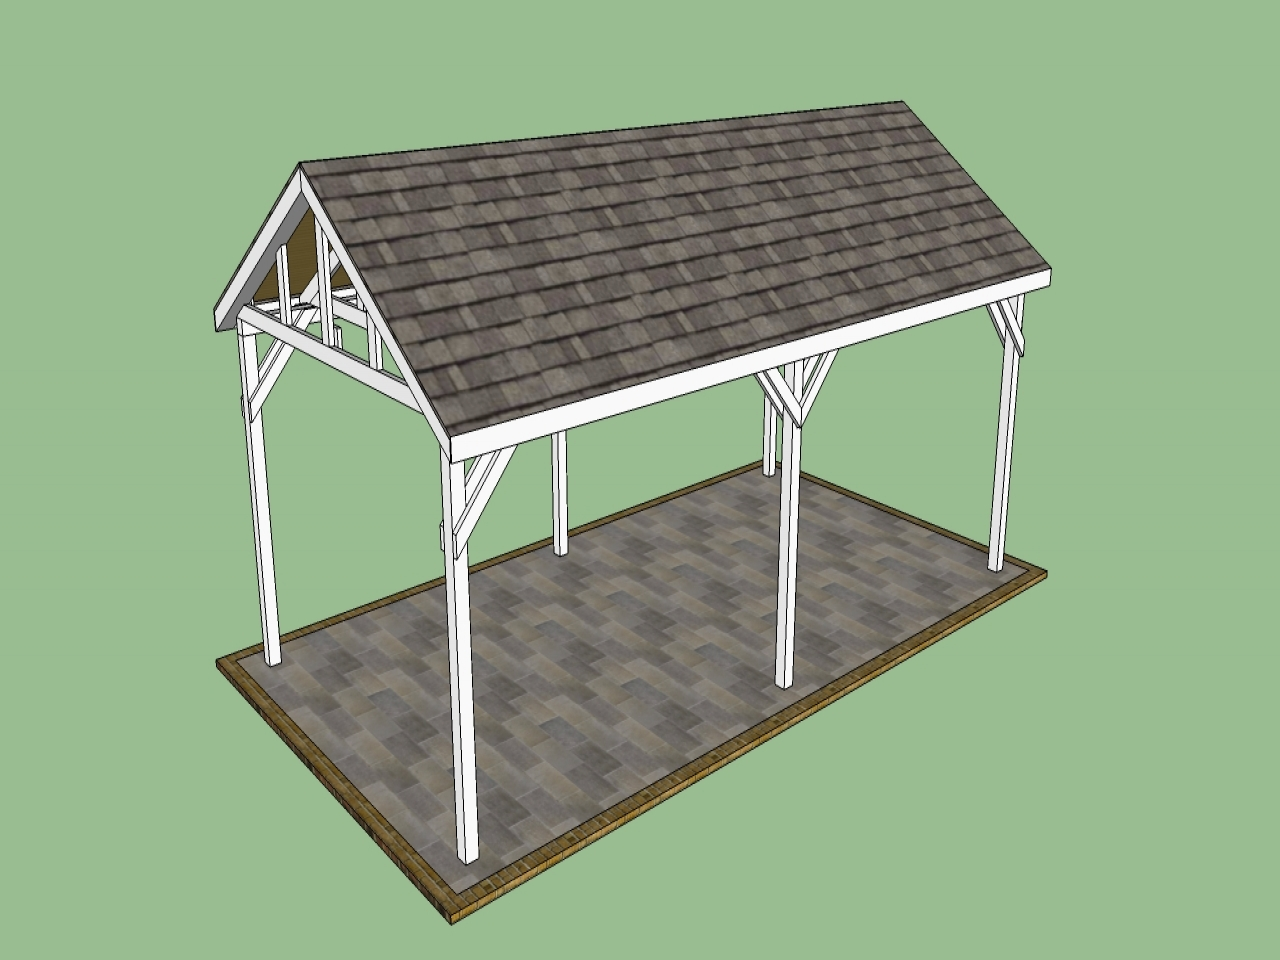 Do It Yourself Home Design: Free Wood Carport Plans 2 Car Carport Plans Free, Do It